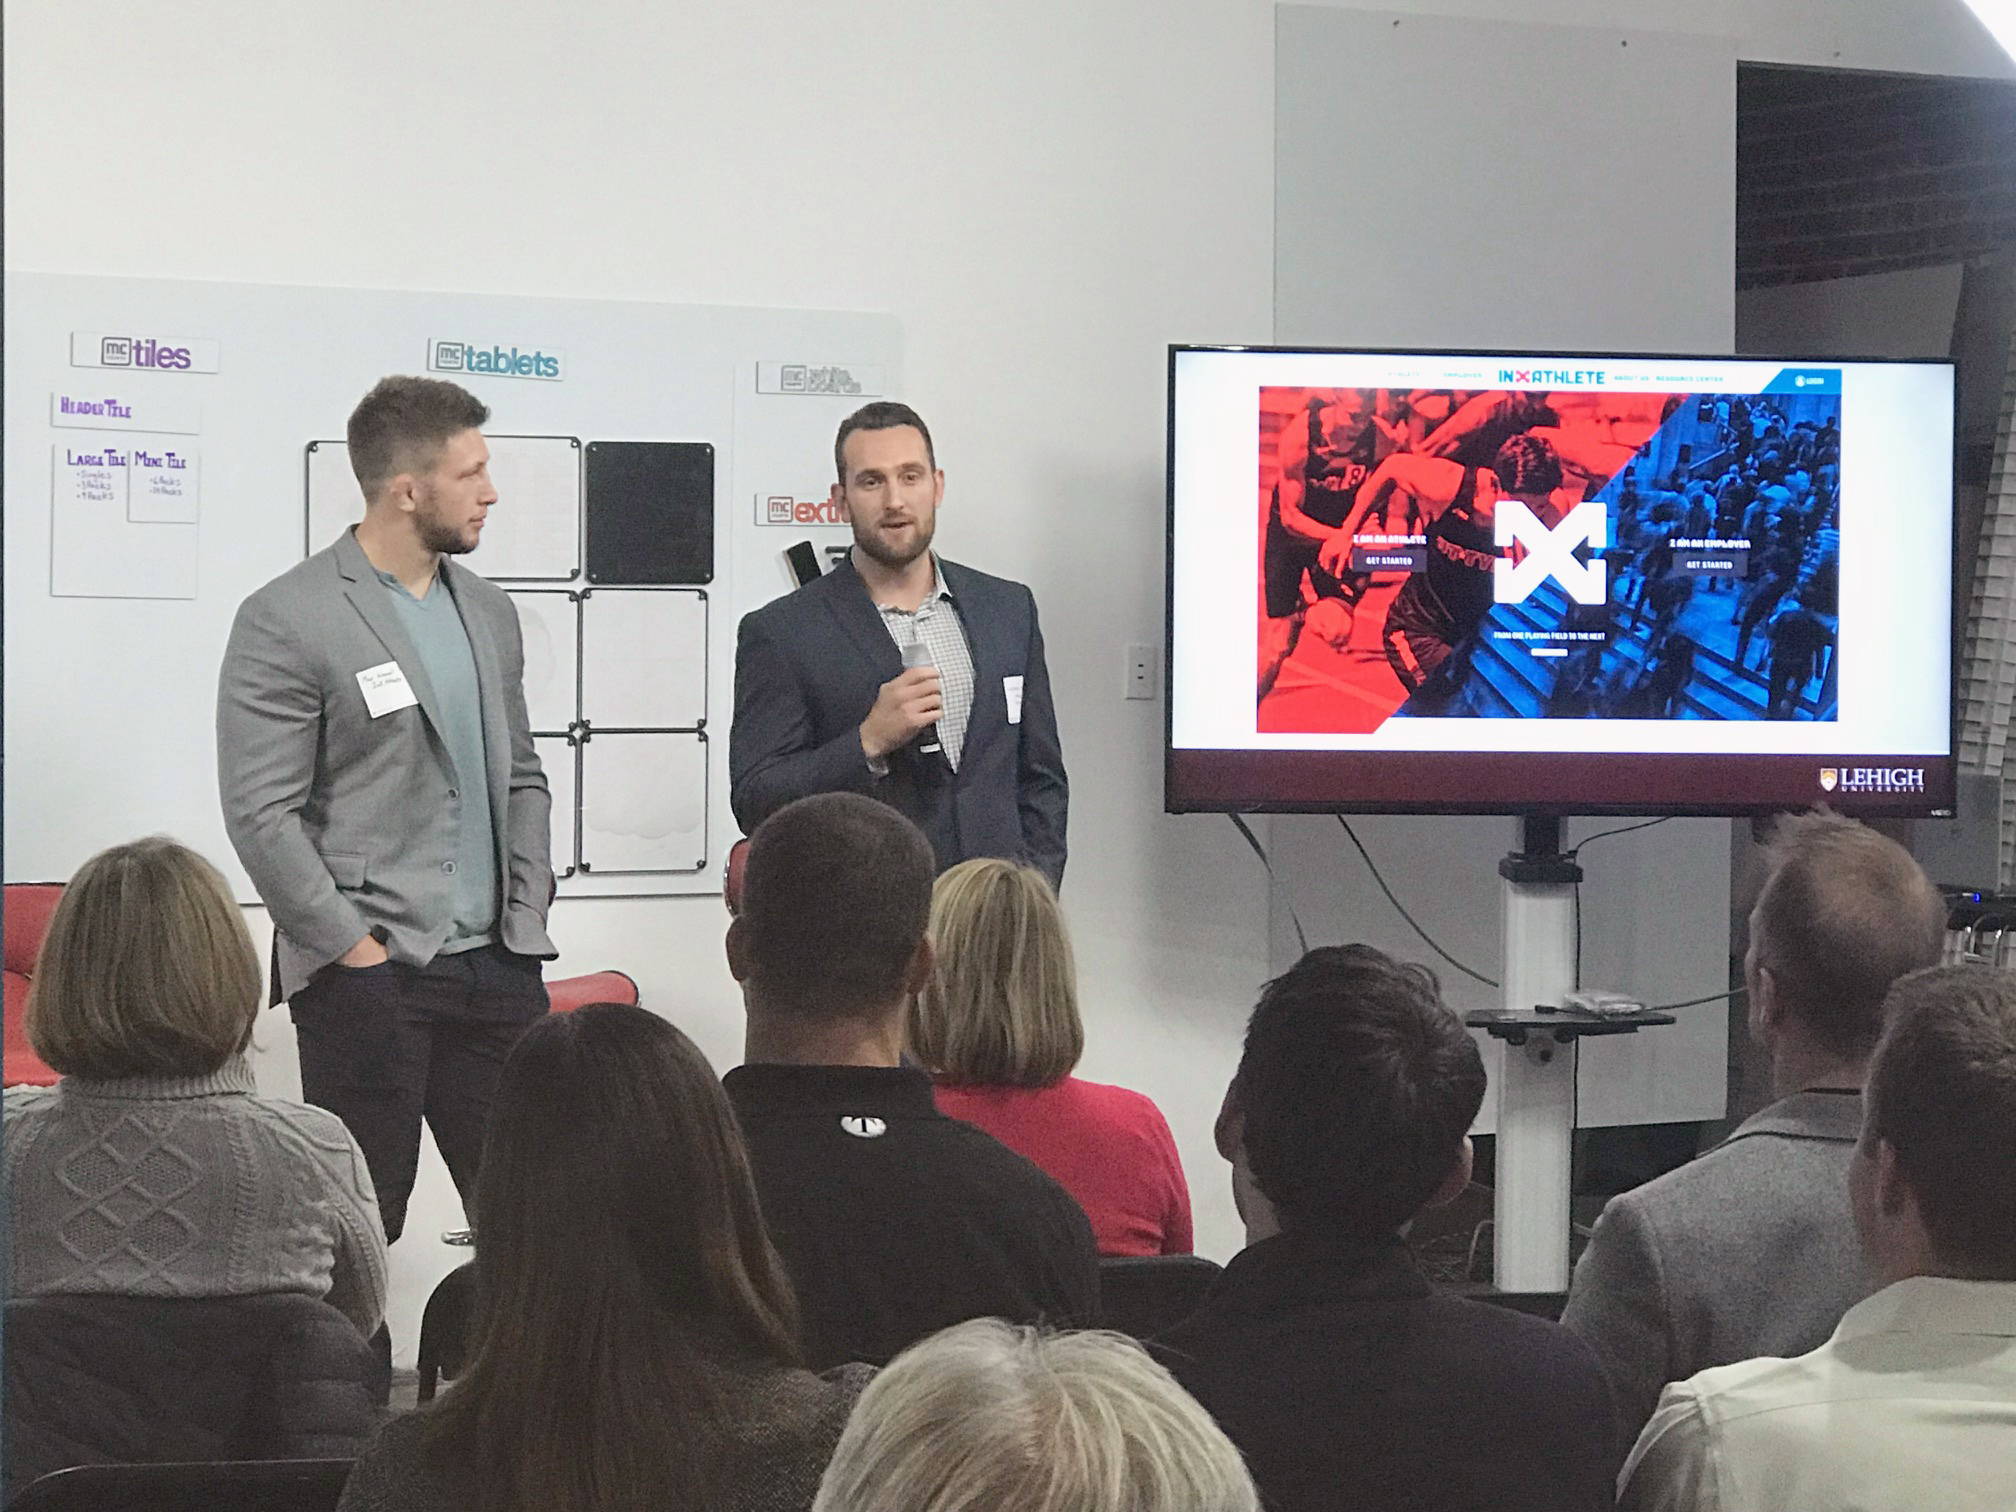 Max Wessell '16 (left) and Cody Ferraro '15 '15G, co-founders of InXAthlete, were among alumni who spoke at Lehigh's Startup Nation, a professional alliance alumni event held in Denver on November 7, 2018.